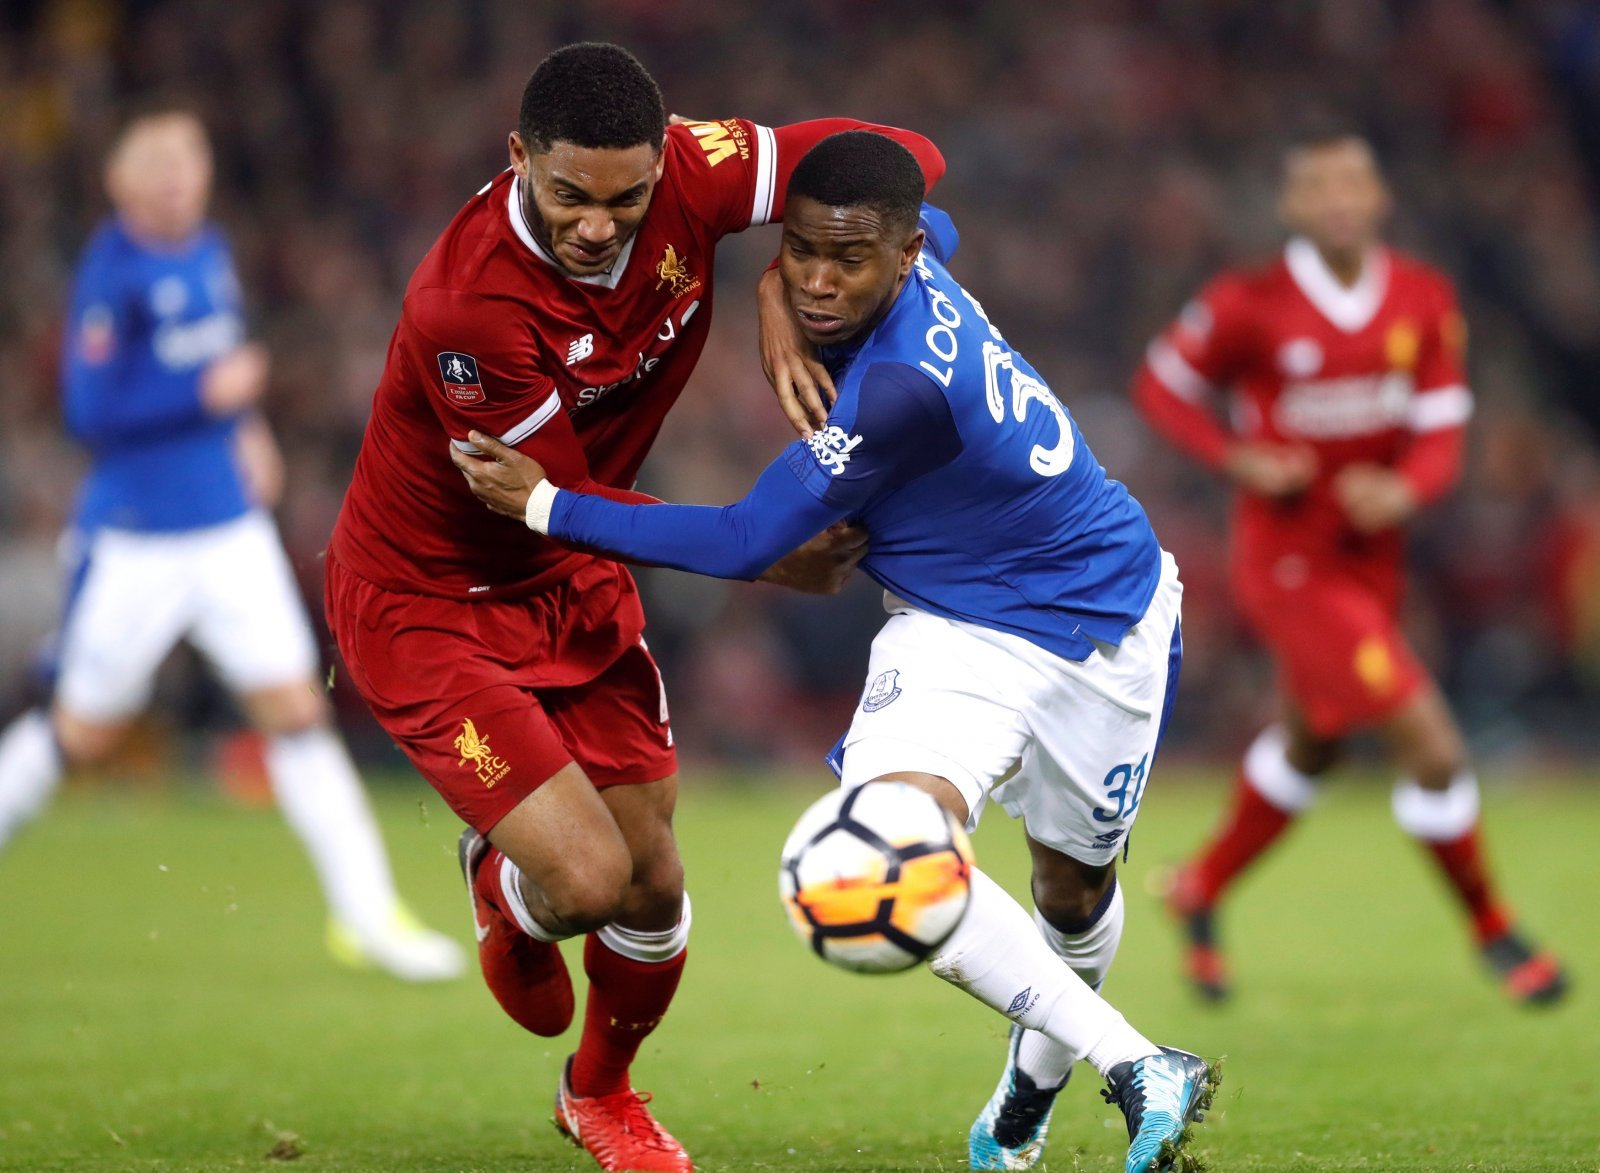 Everton should include buy-back clause in any possible deal for Ademola Lookman